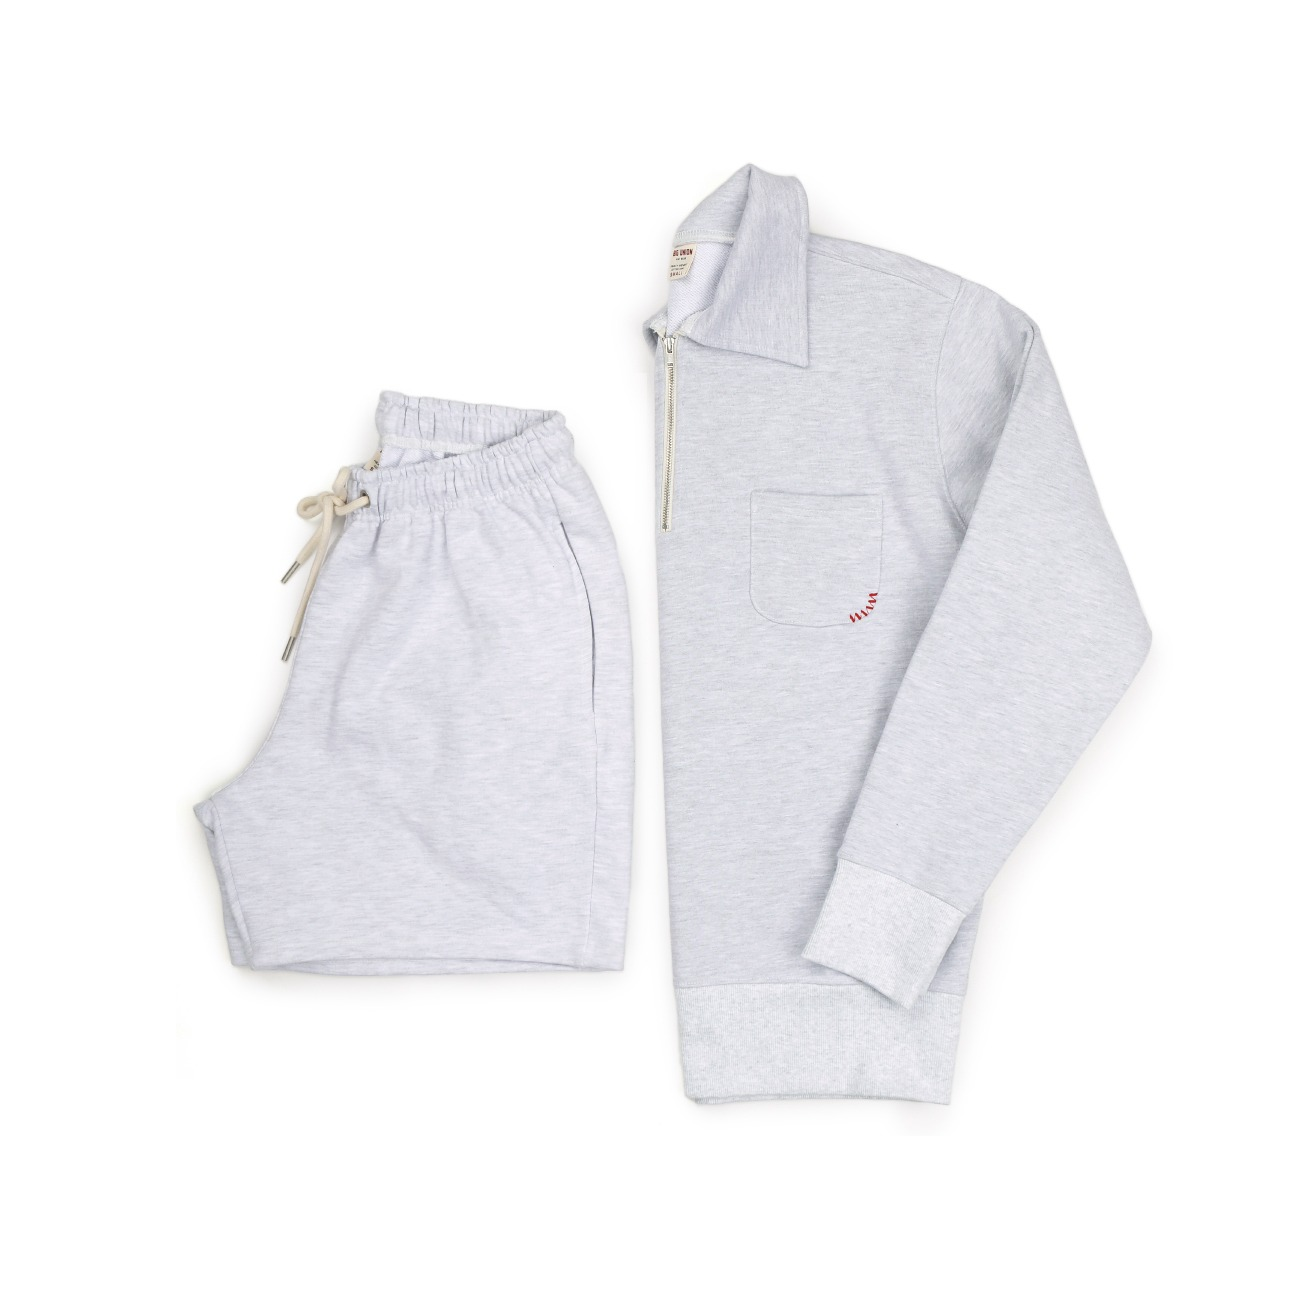 (SET 할인적용 10%) 89 1/2 Zip Up Sweat + Shorts